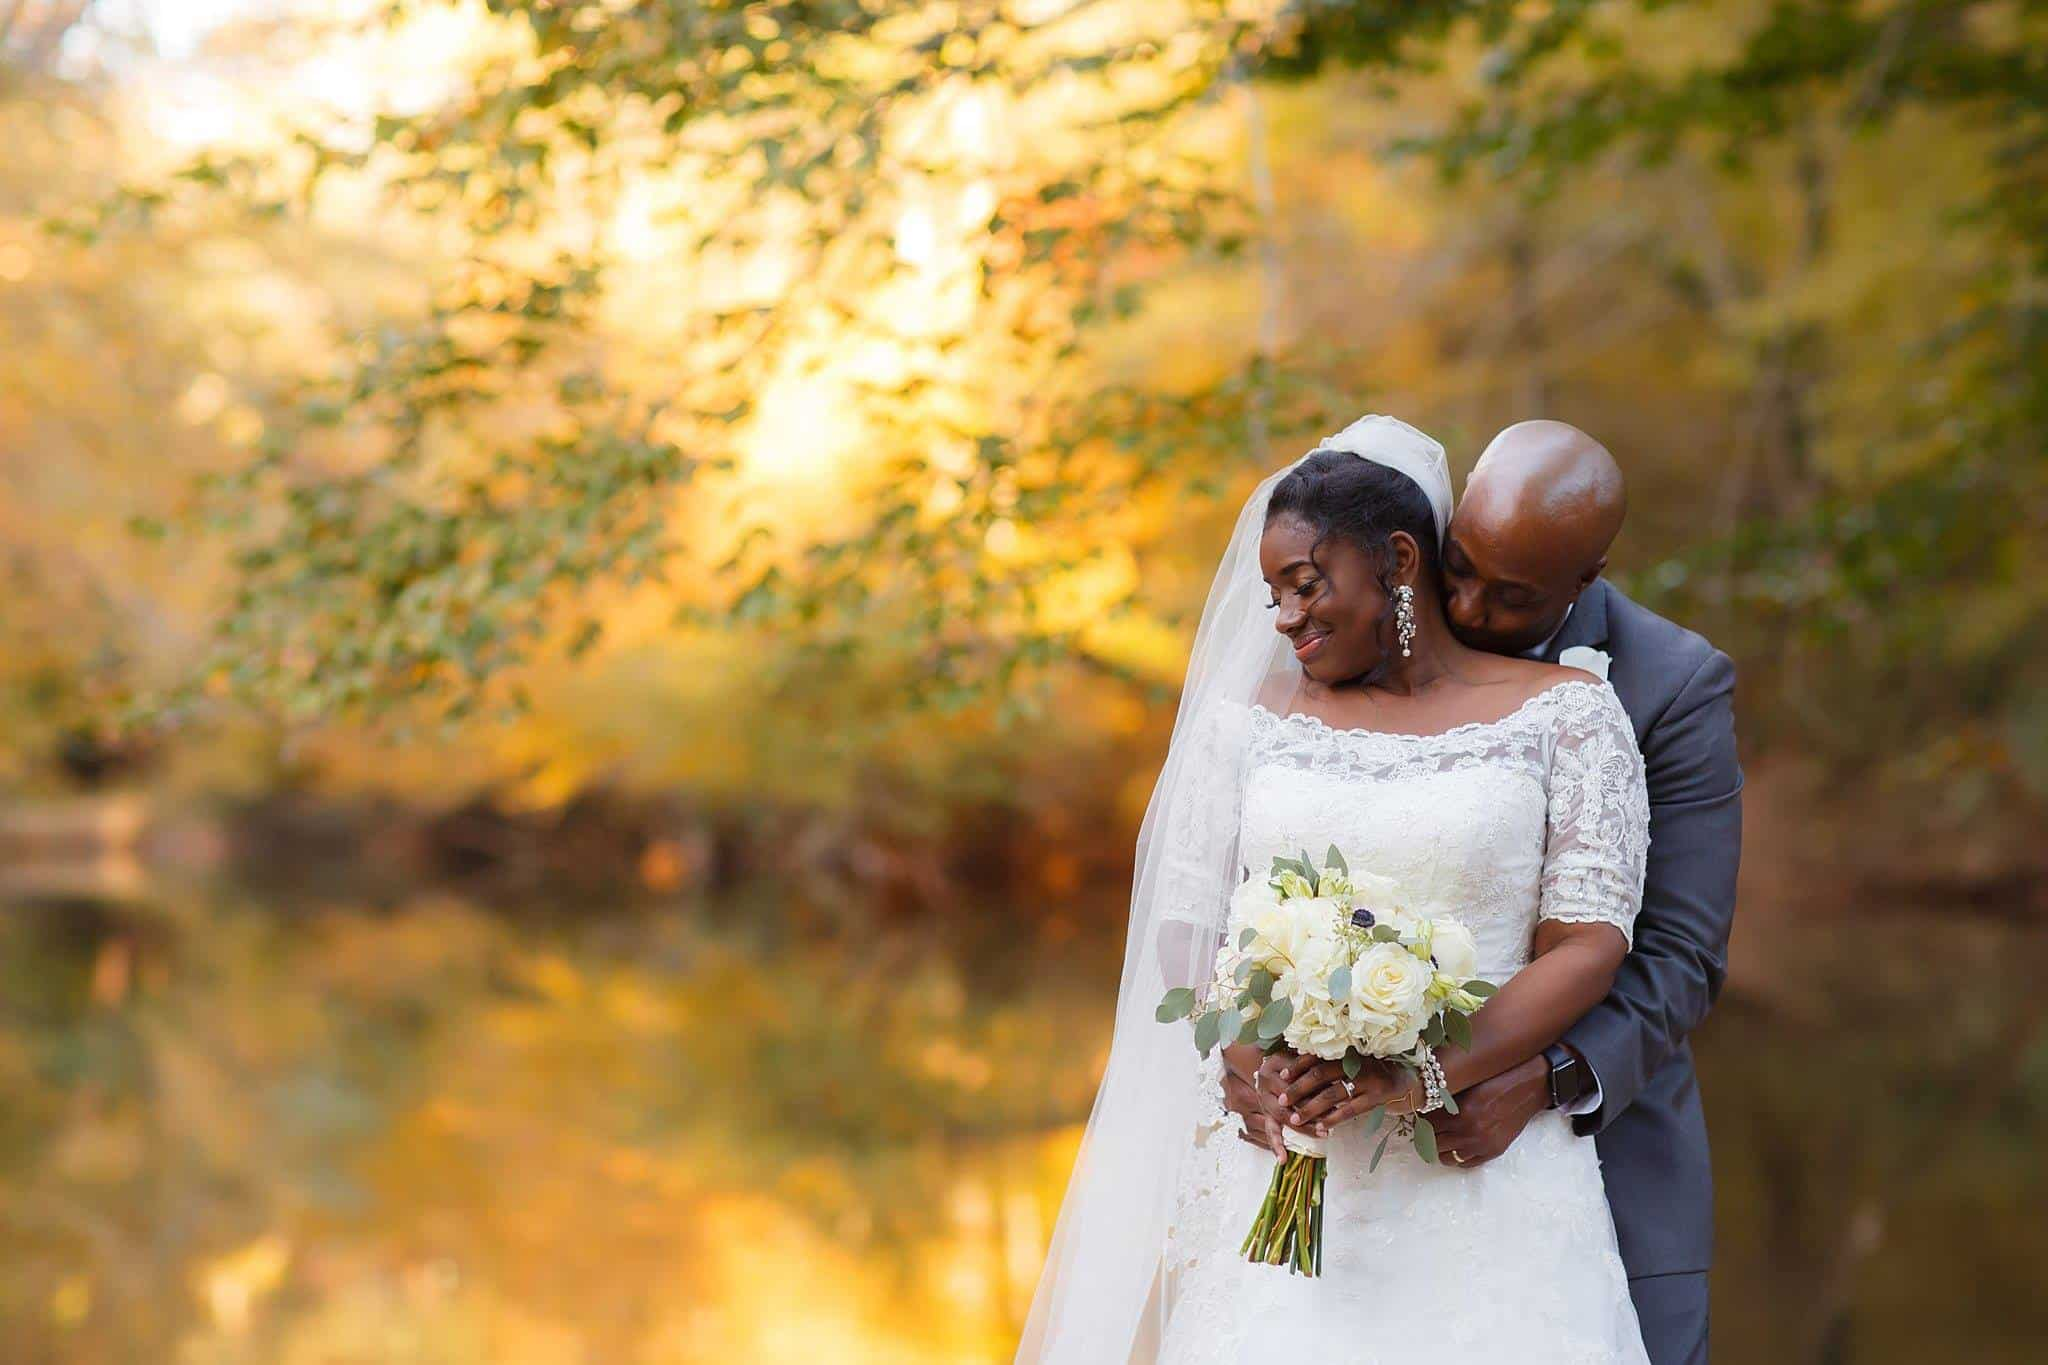 bride and groom embracing for wedding photo surrounded by fall leaves